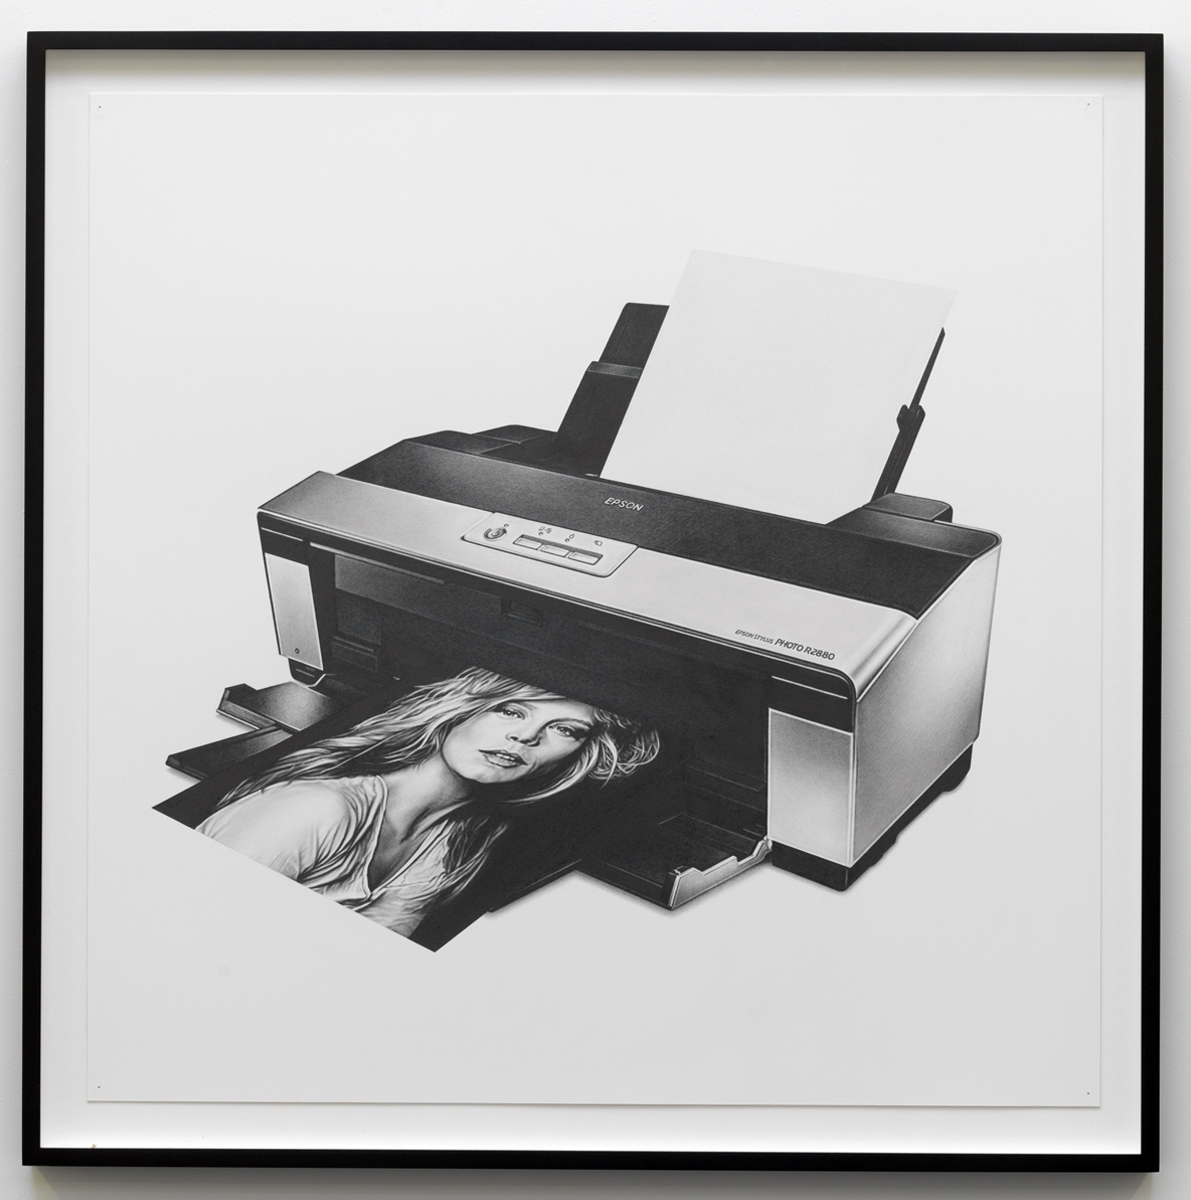 Mathew Cerletty Epson, 2009 graphite on paper 76,2 x 76,2 x 2,54 cm